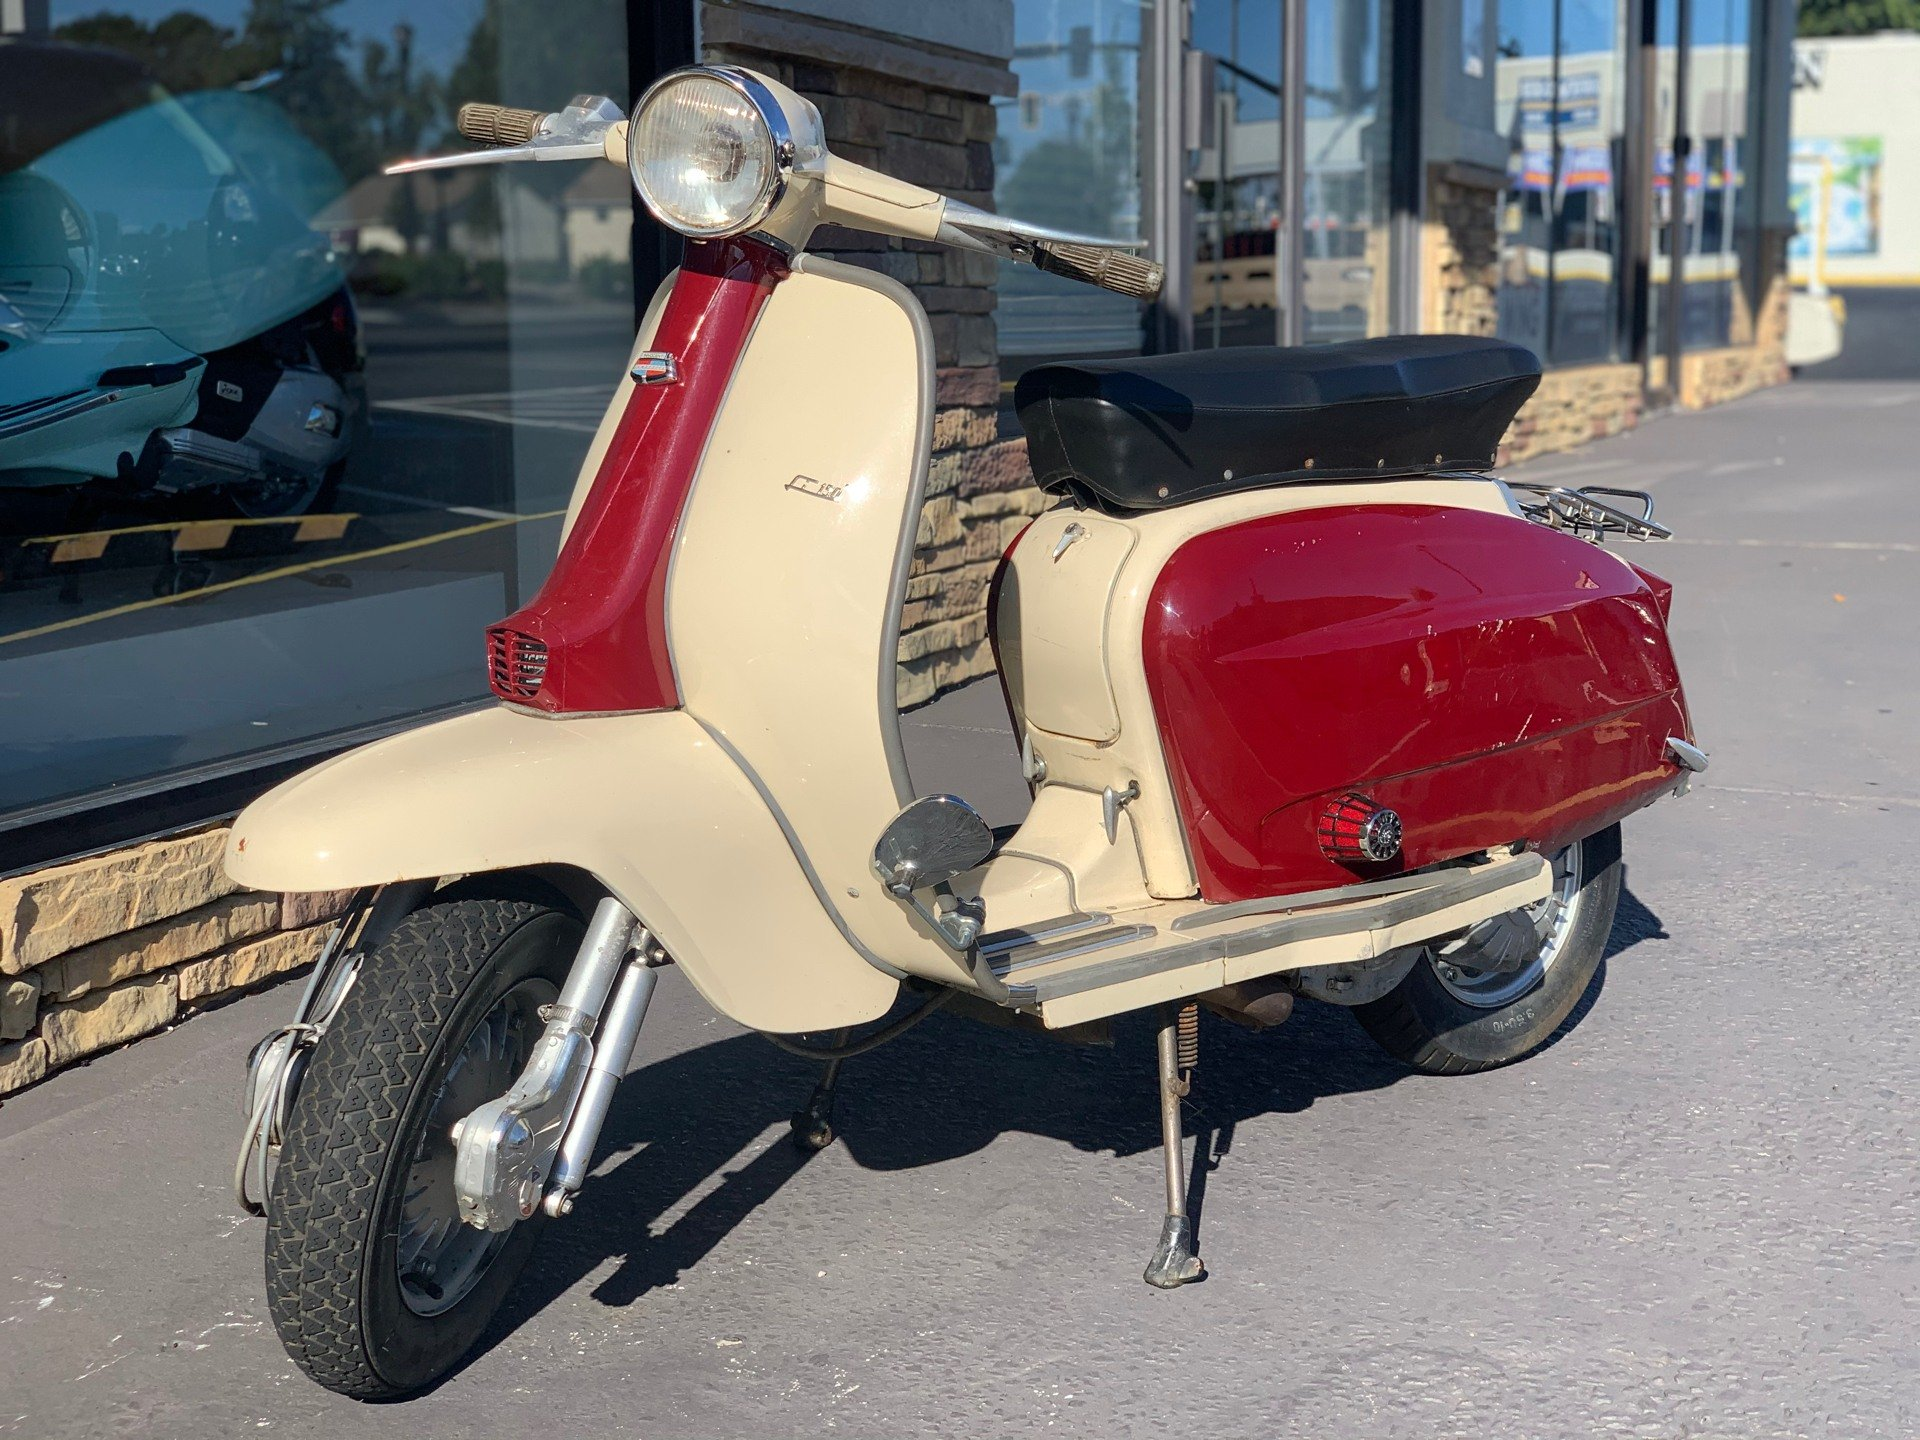 1962 Lambretta Li 150 Series III in Marietta, Georgia - Photo 1